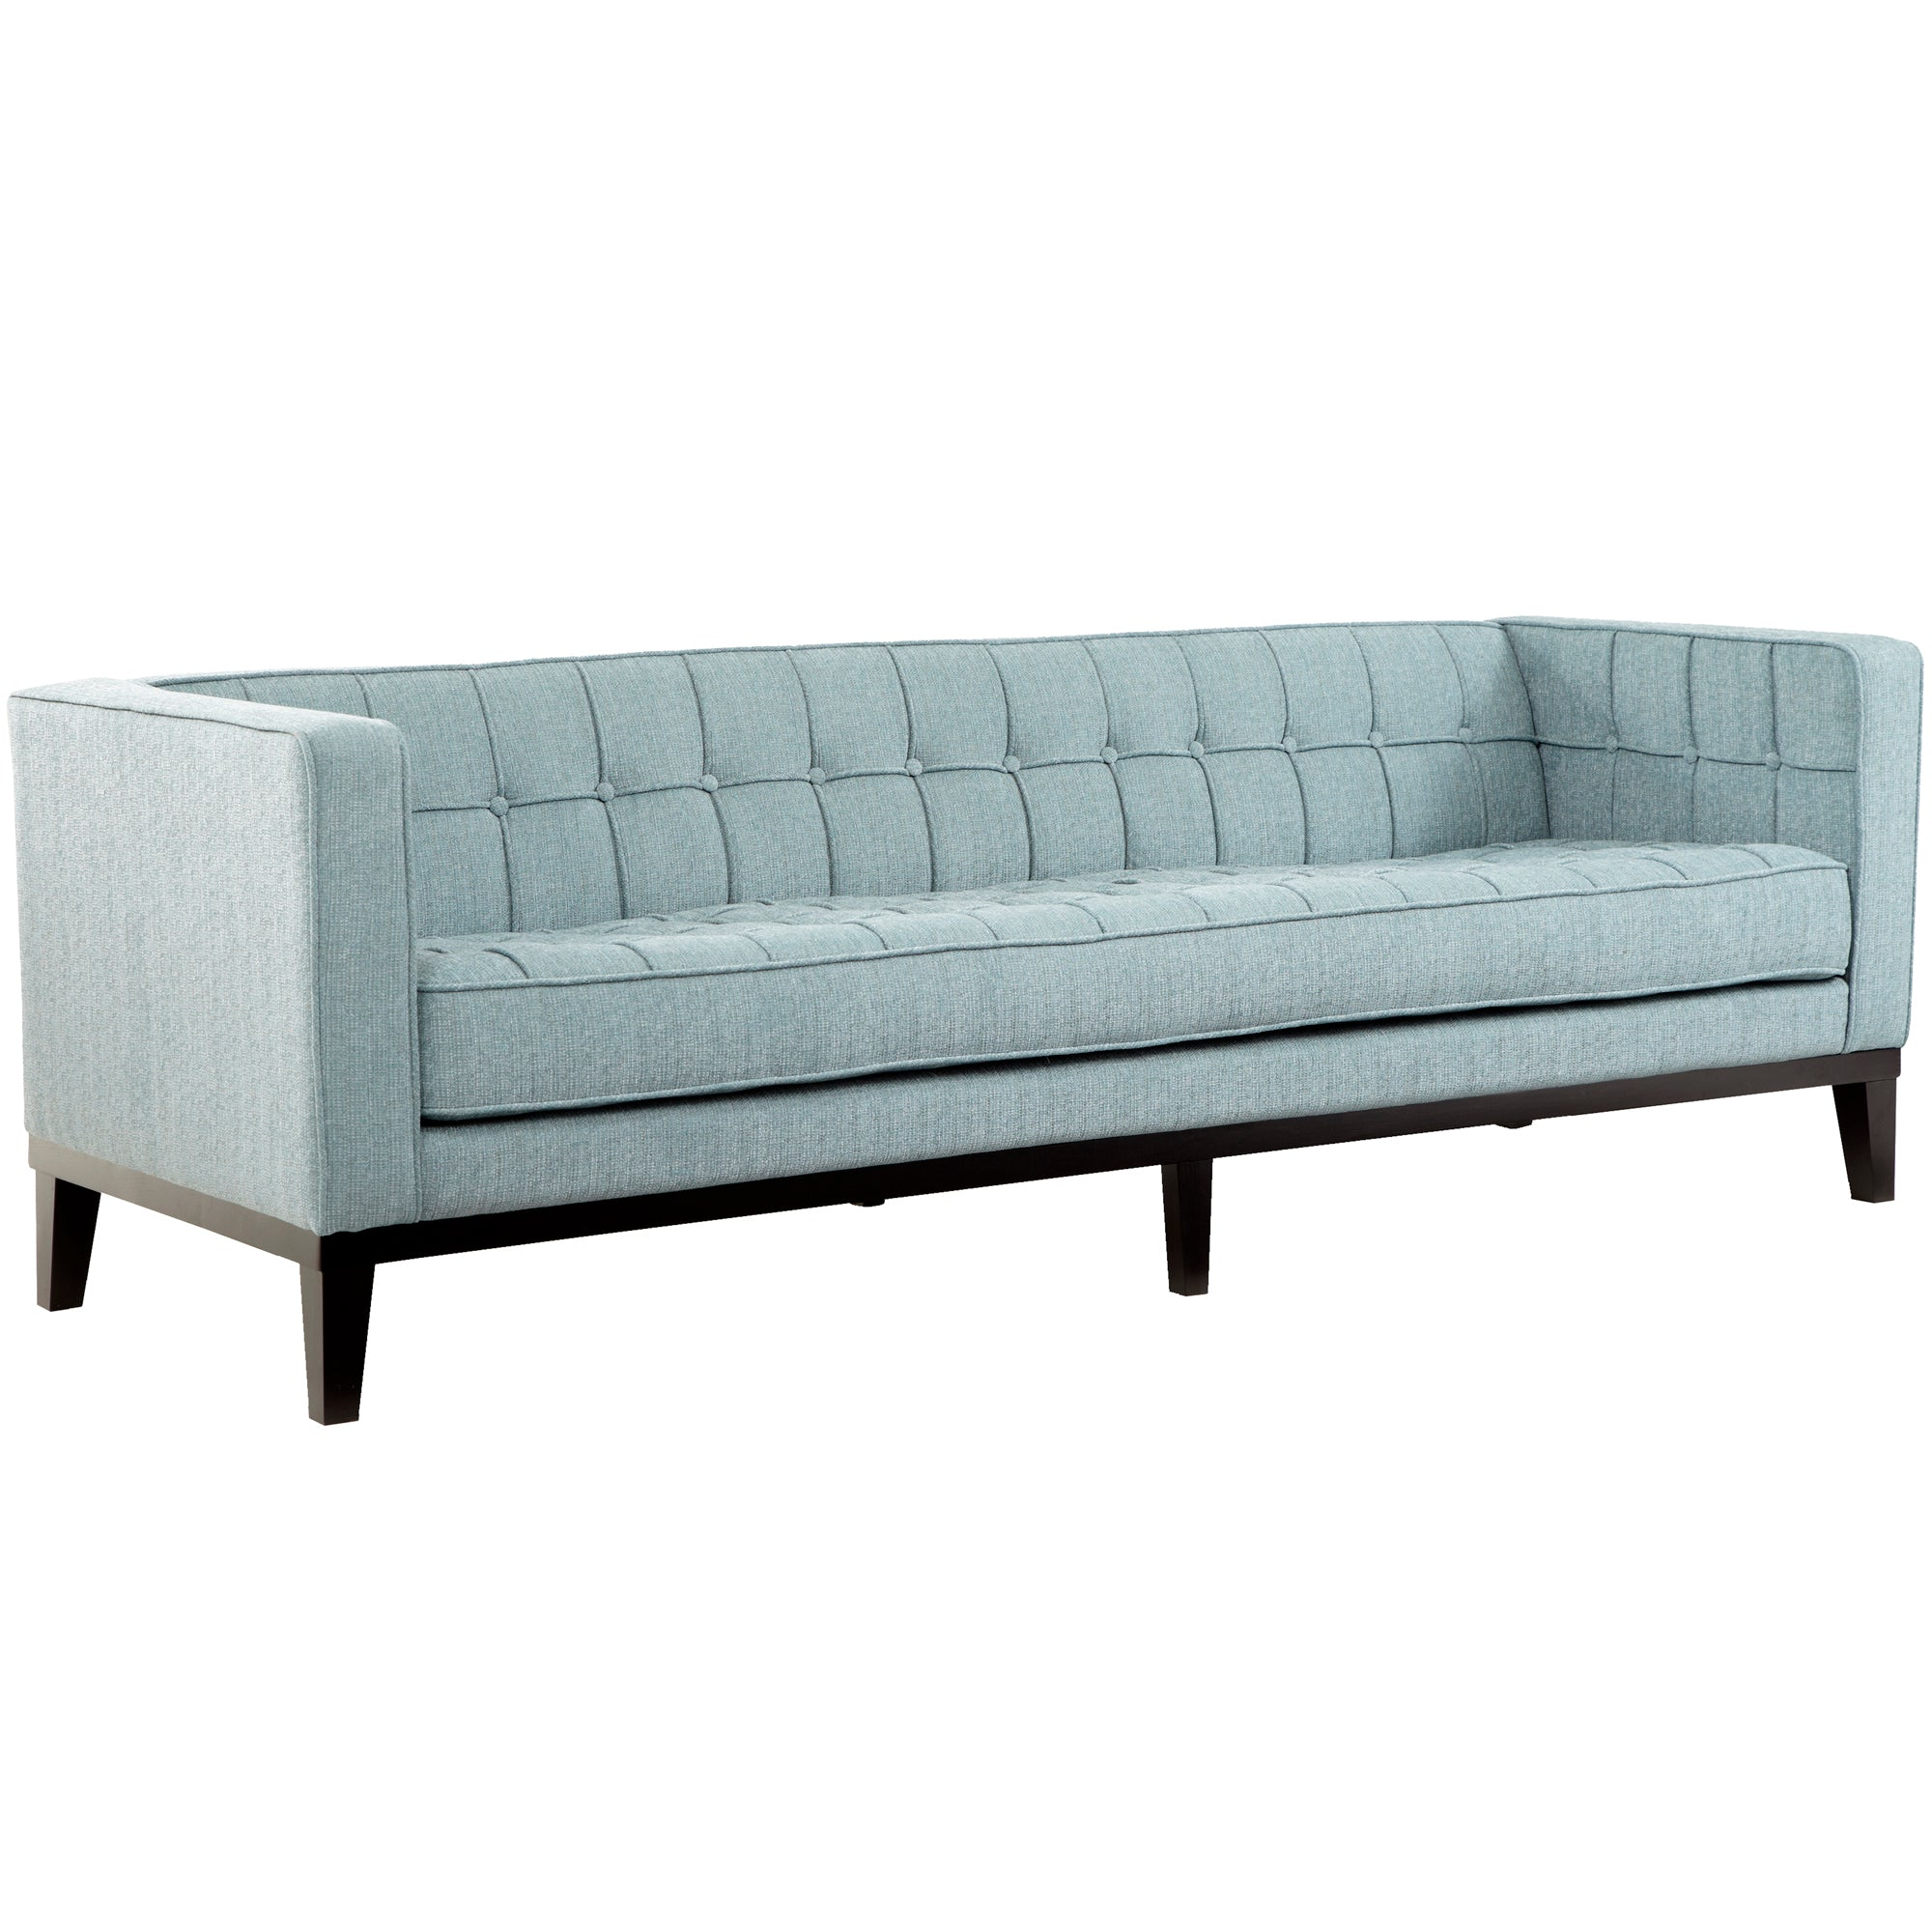 Sofa Spa Blue Fabric 16633 Product Photo